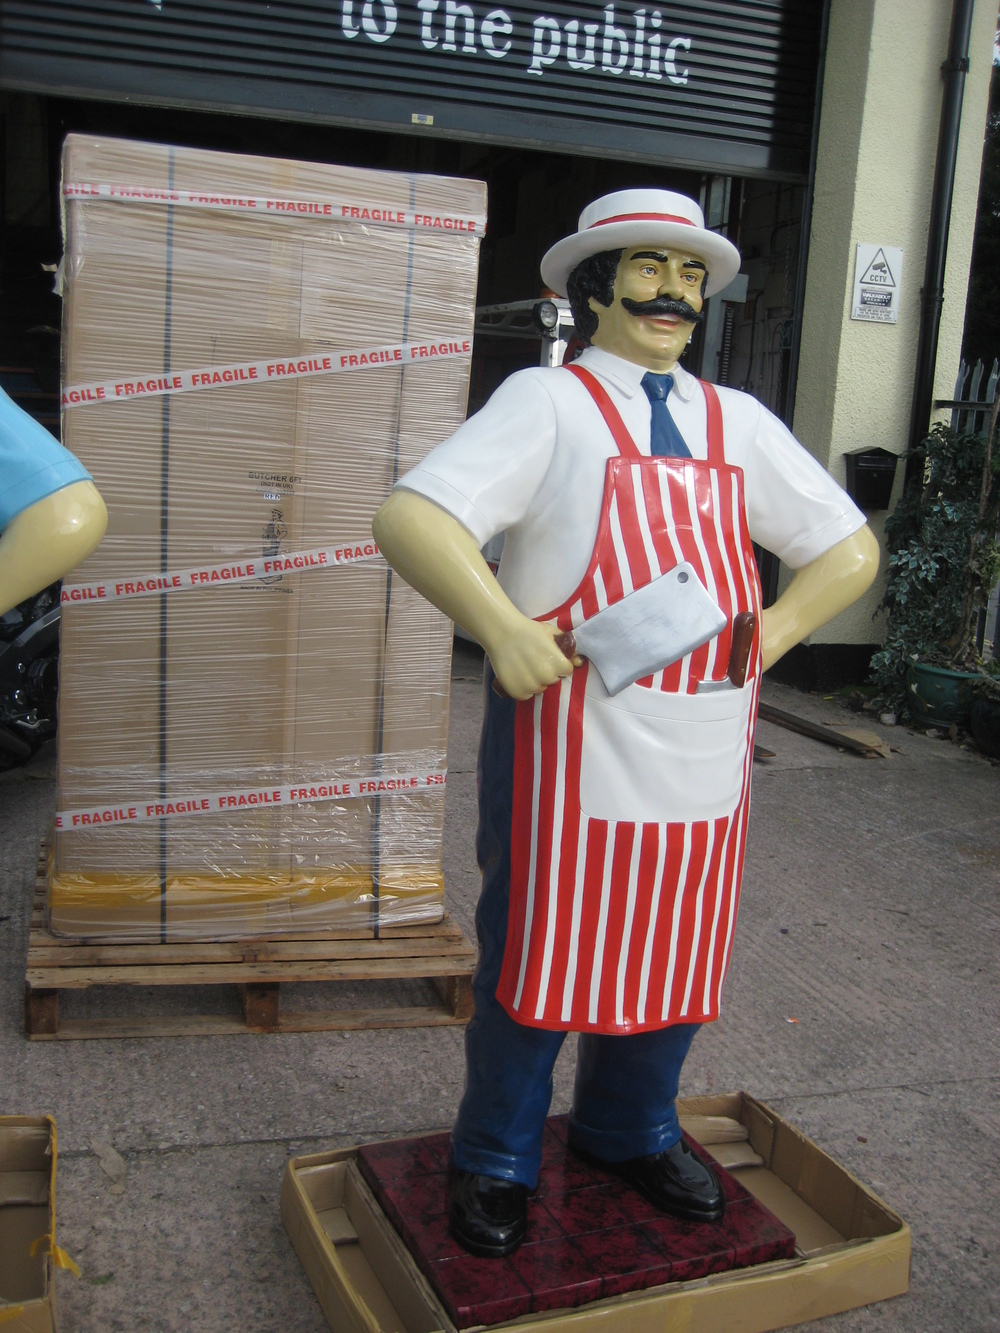 Butchers Kitchen 1 For 1 : Butcher 6ft- Red and White (JR 100117) - The Jolly Roger - Life Size 3D Models - Resin Figures